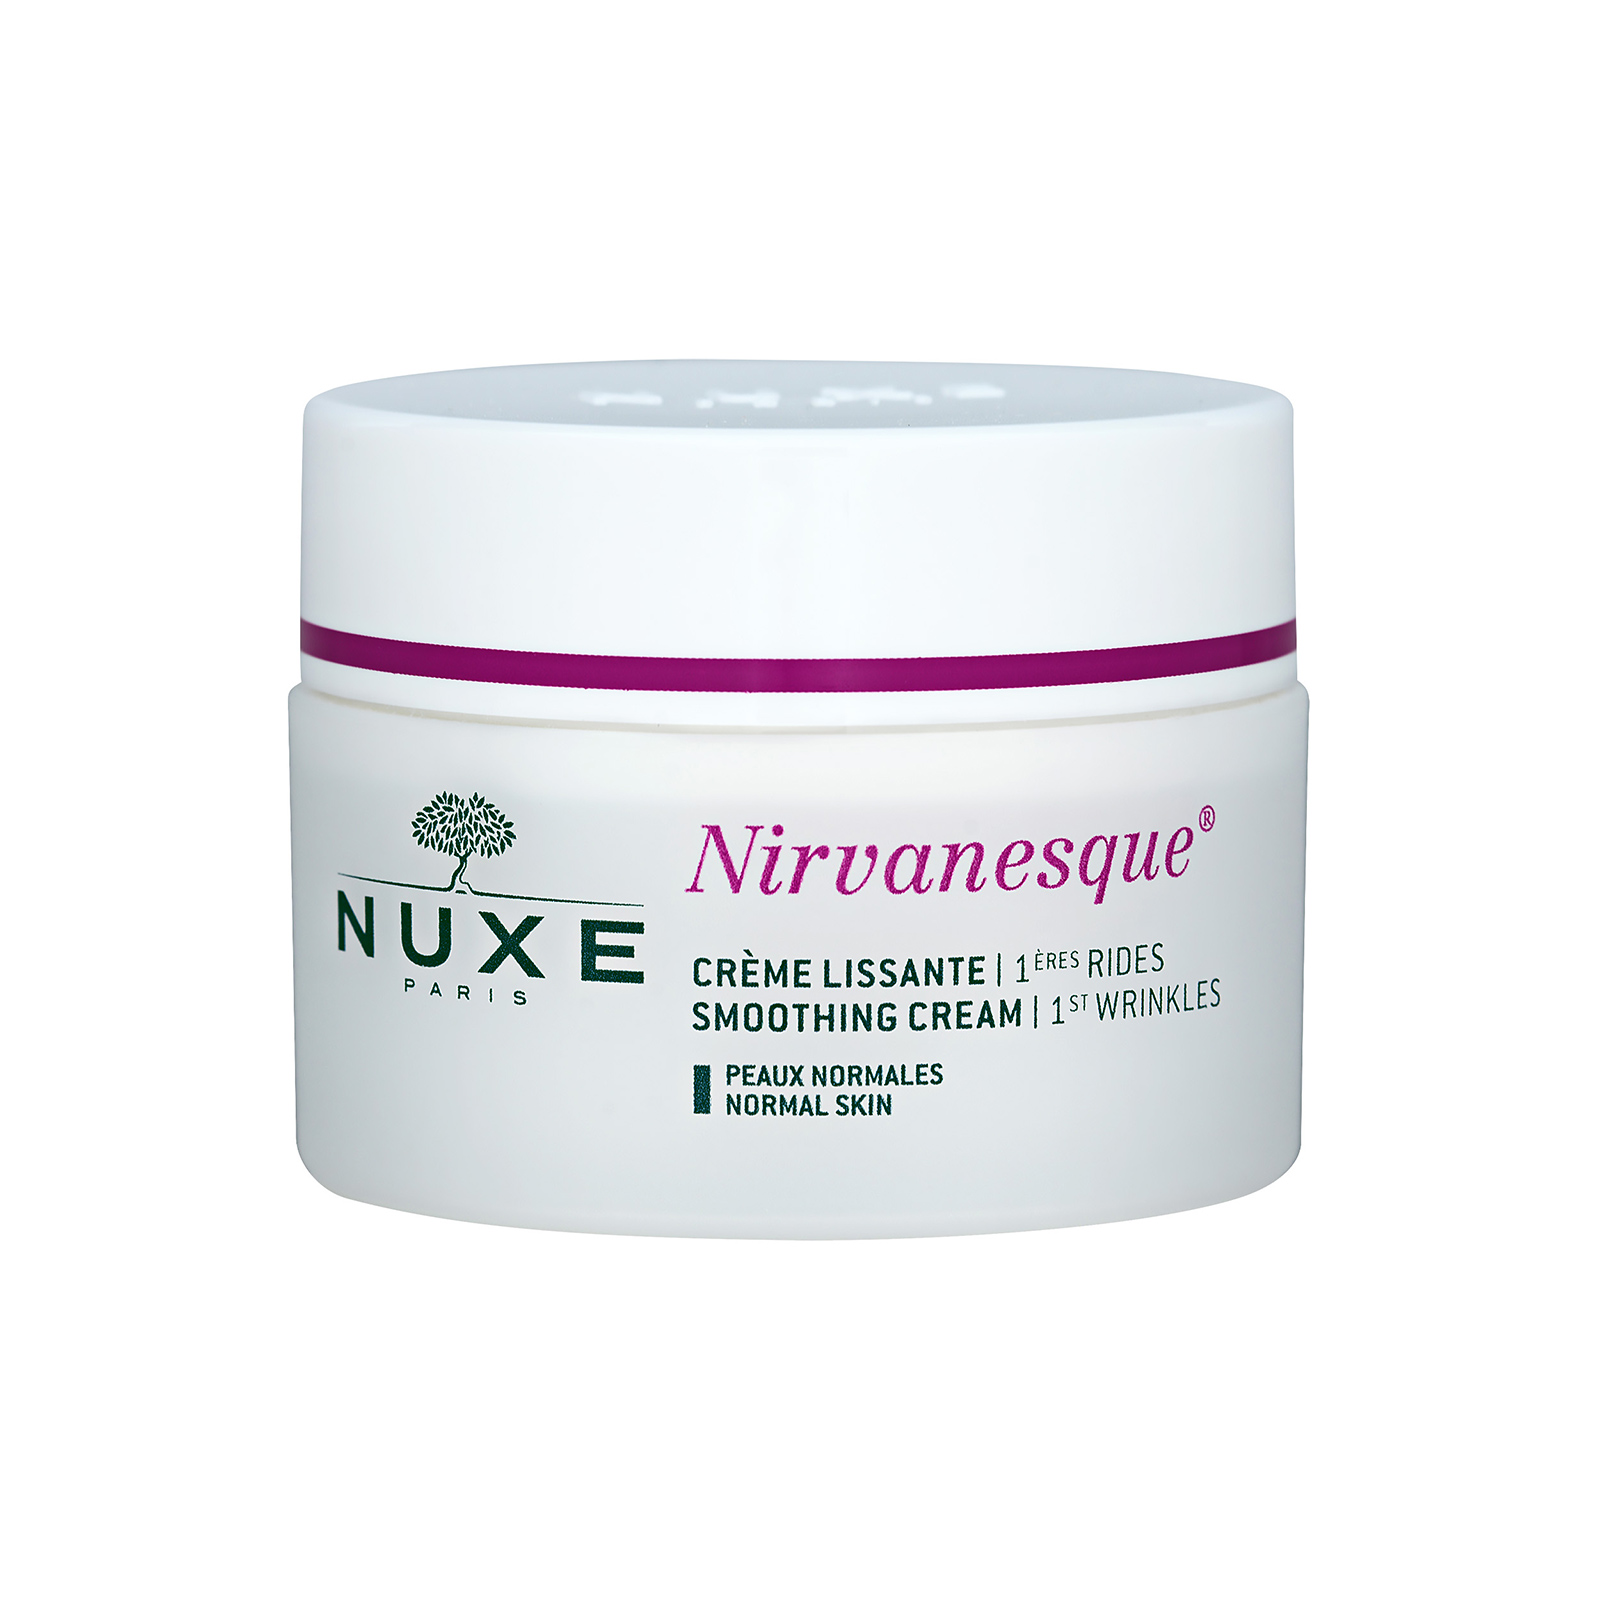 NUXE Nirvanesque 1st Wrinkles Smoothing Cream (Normal Skin) 1.5oz, 50ml from Cosme-De.com